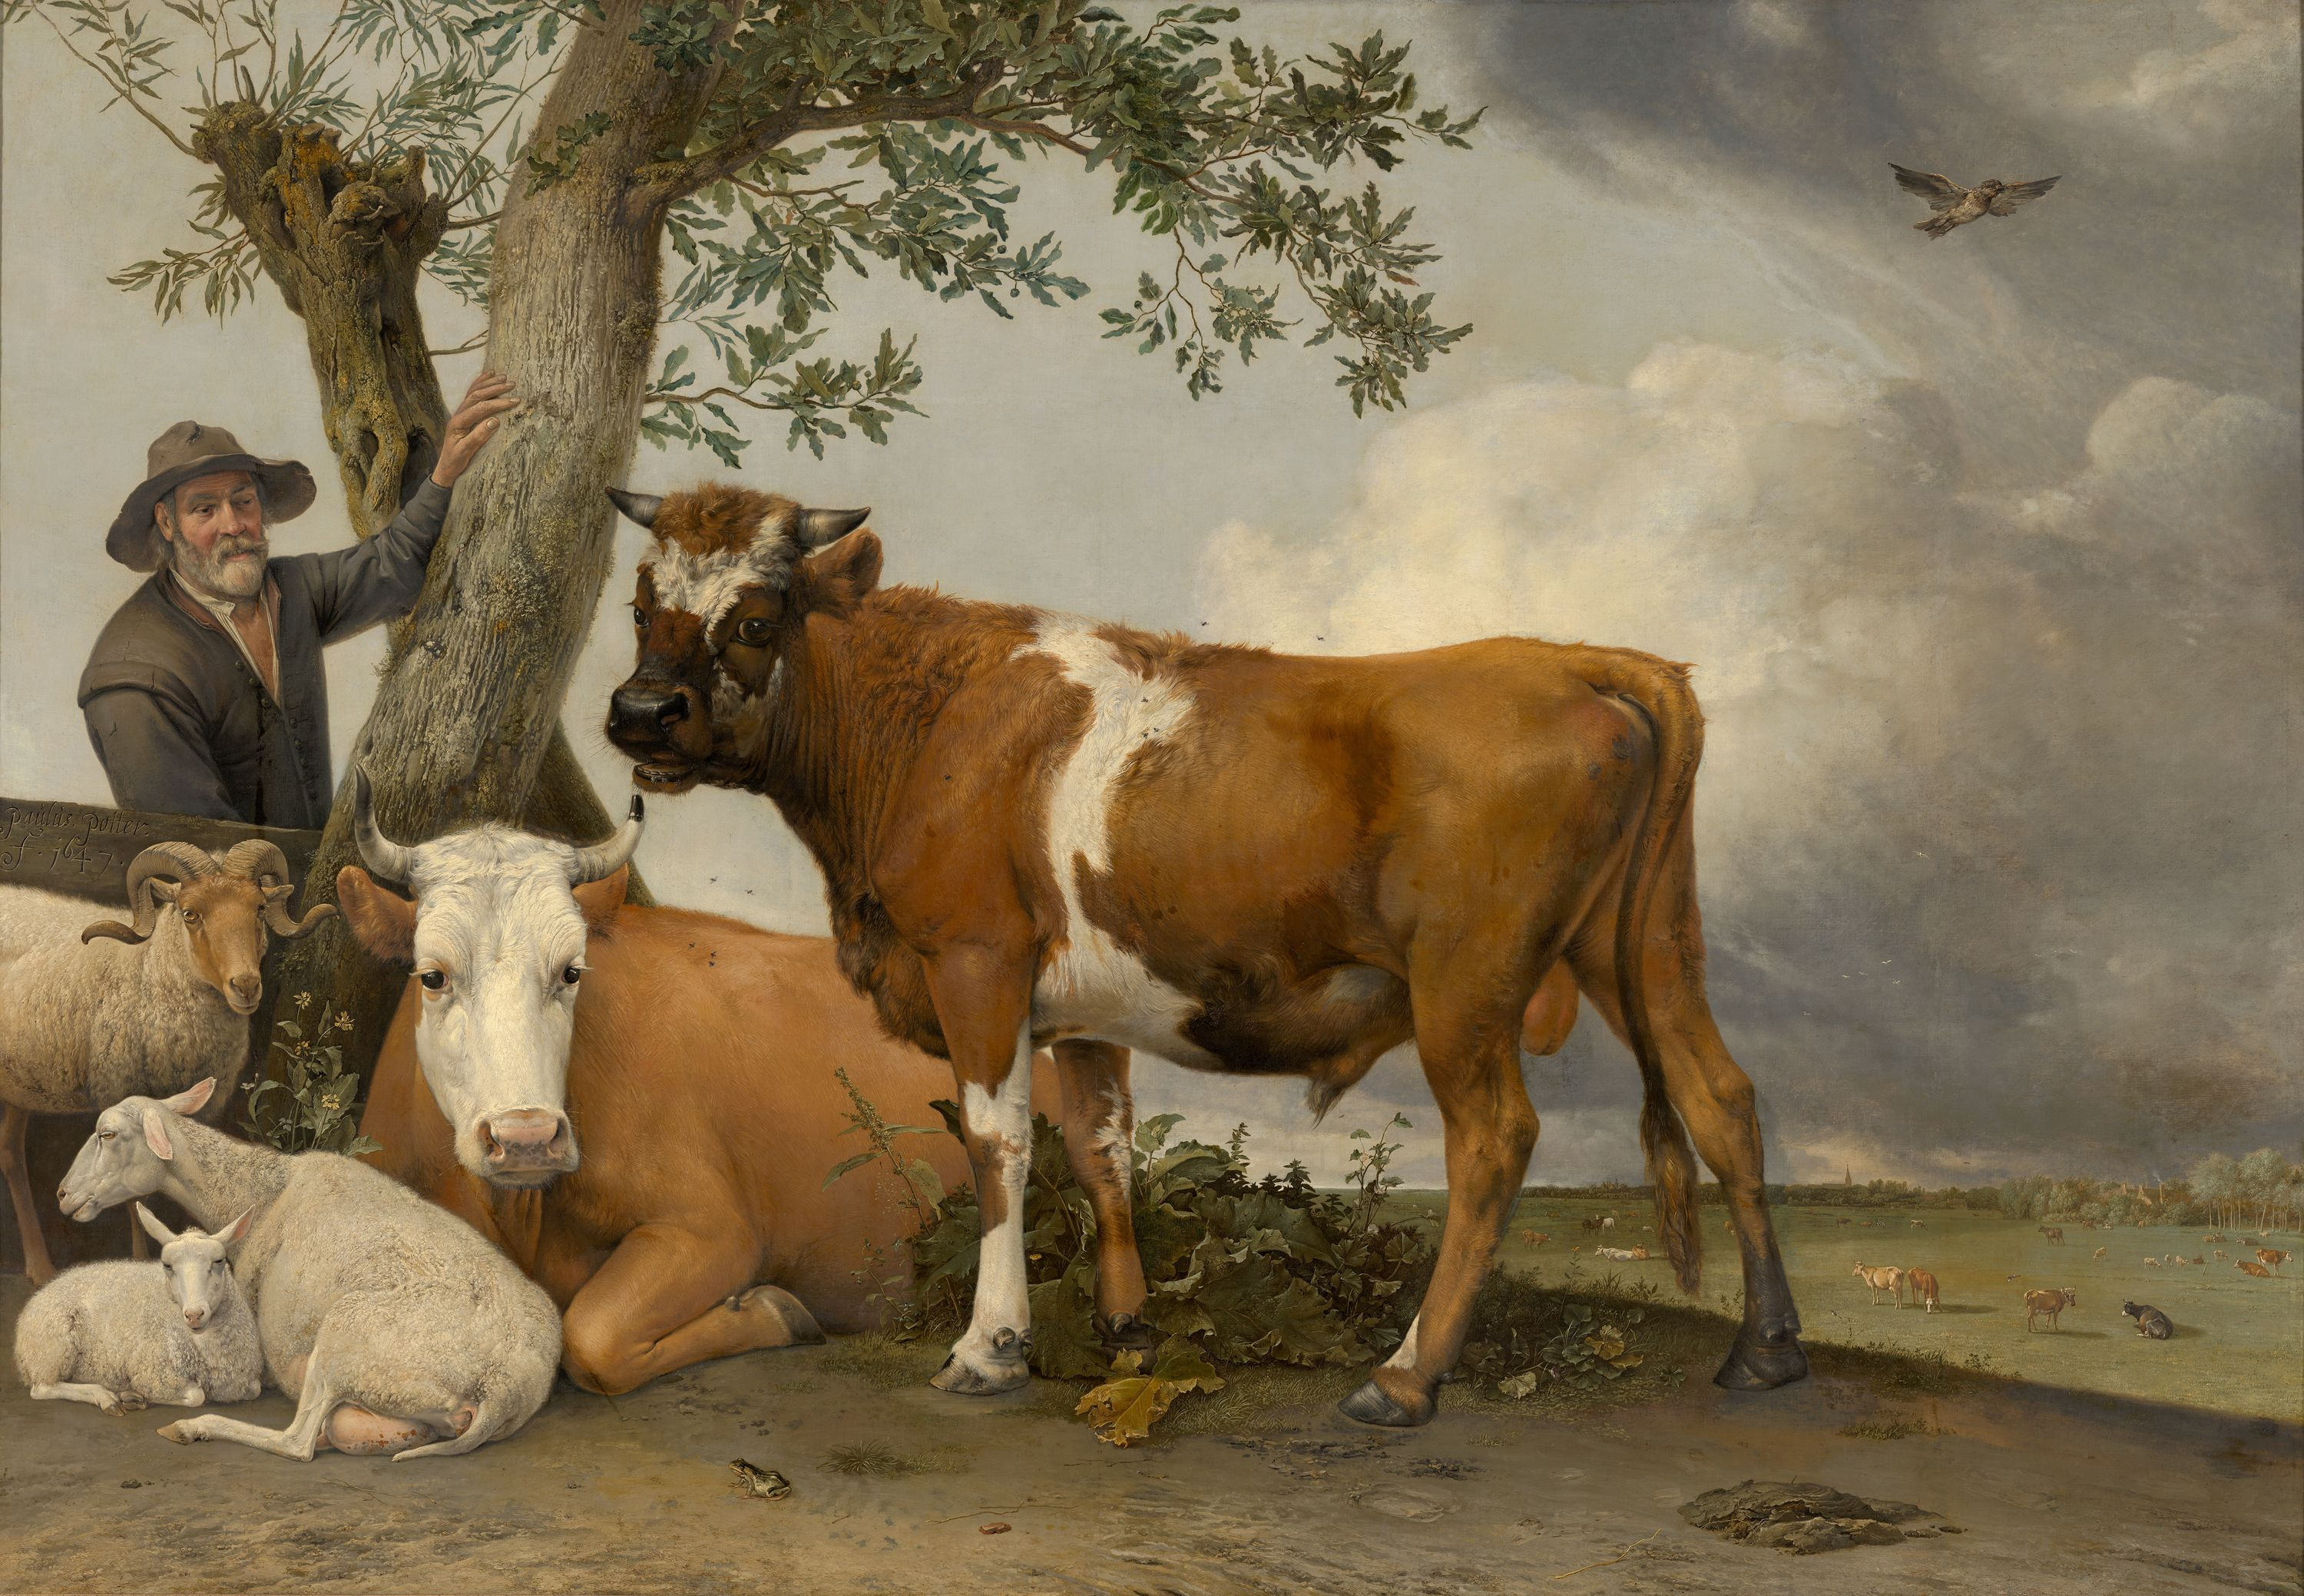 Painting The Cow, by Paulus Potter